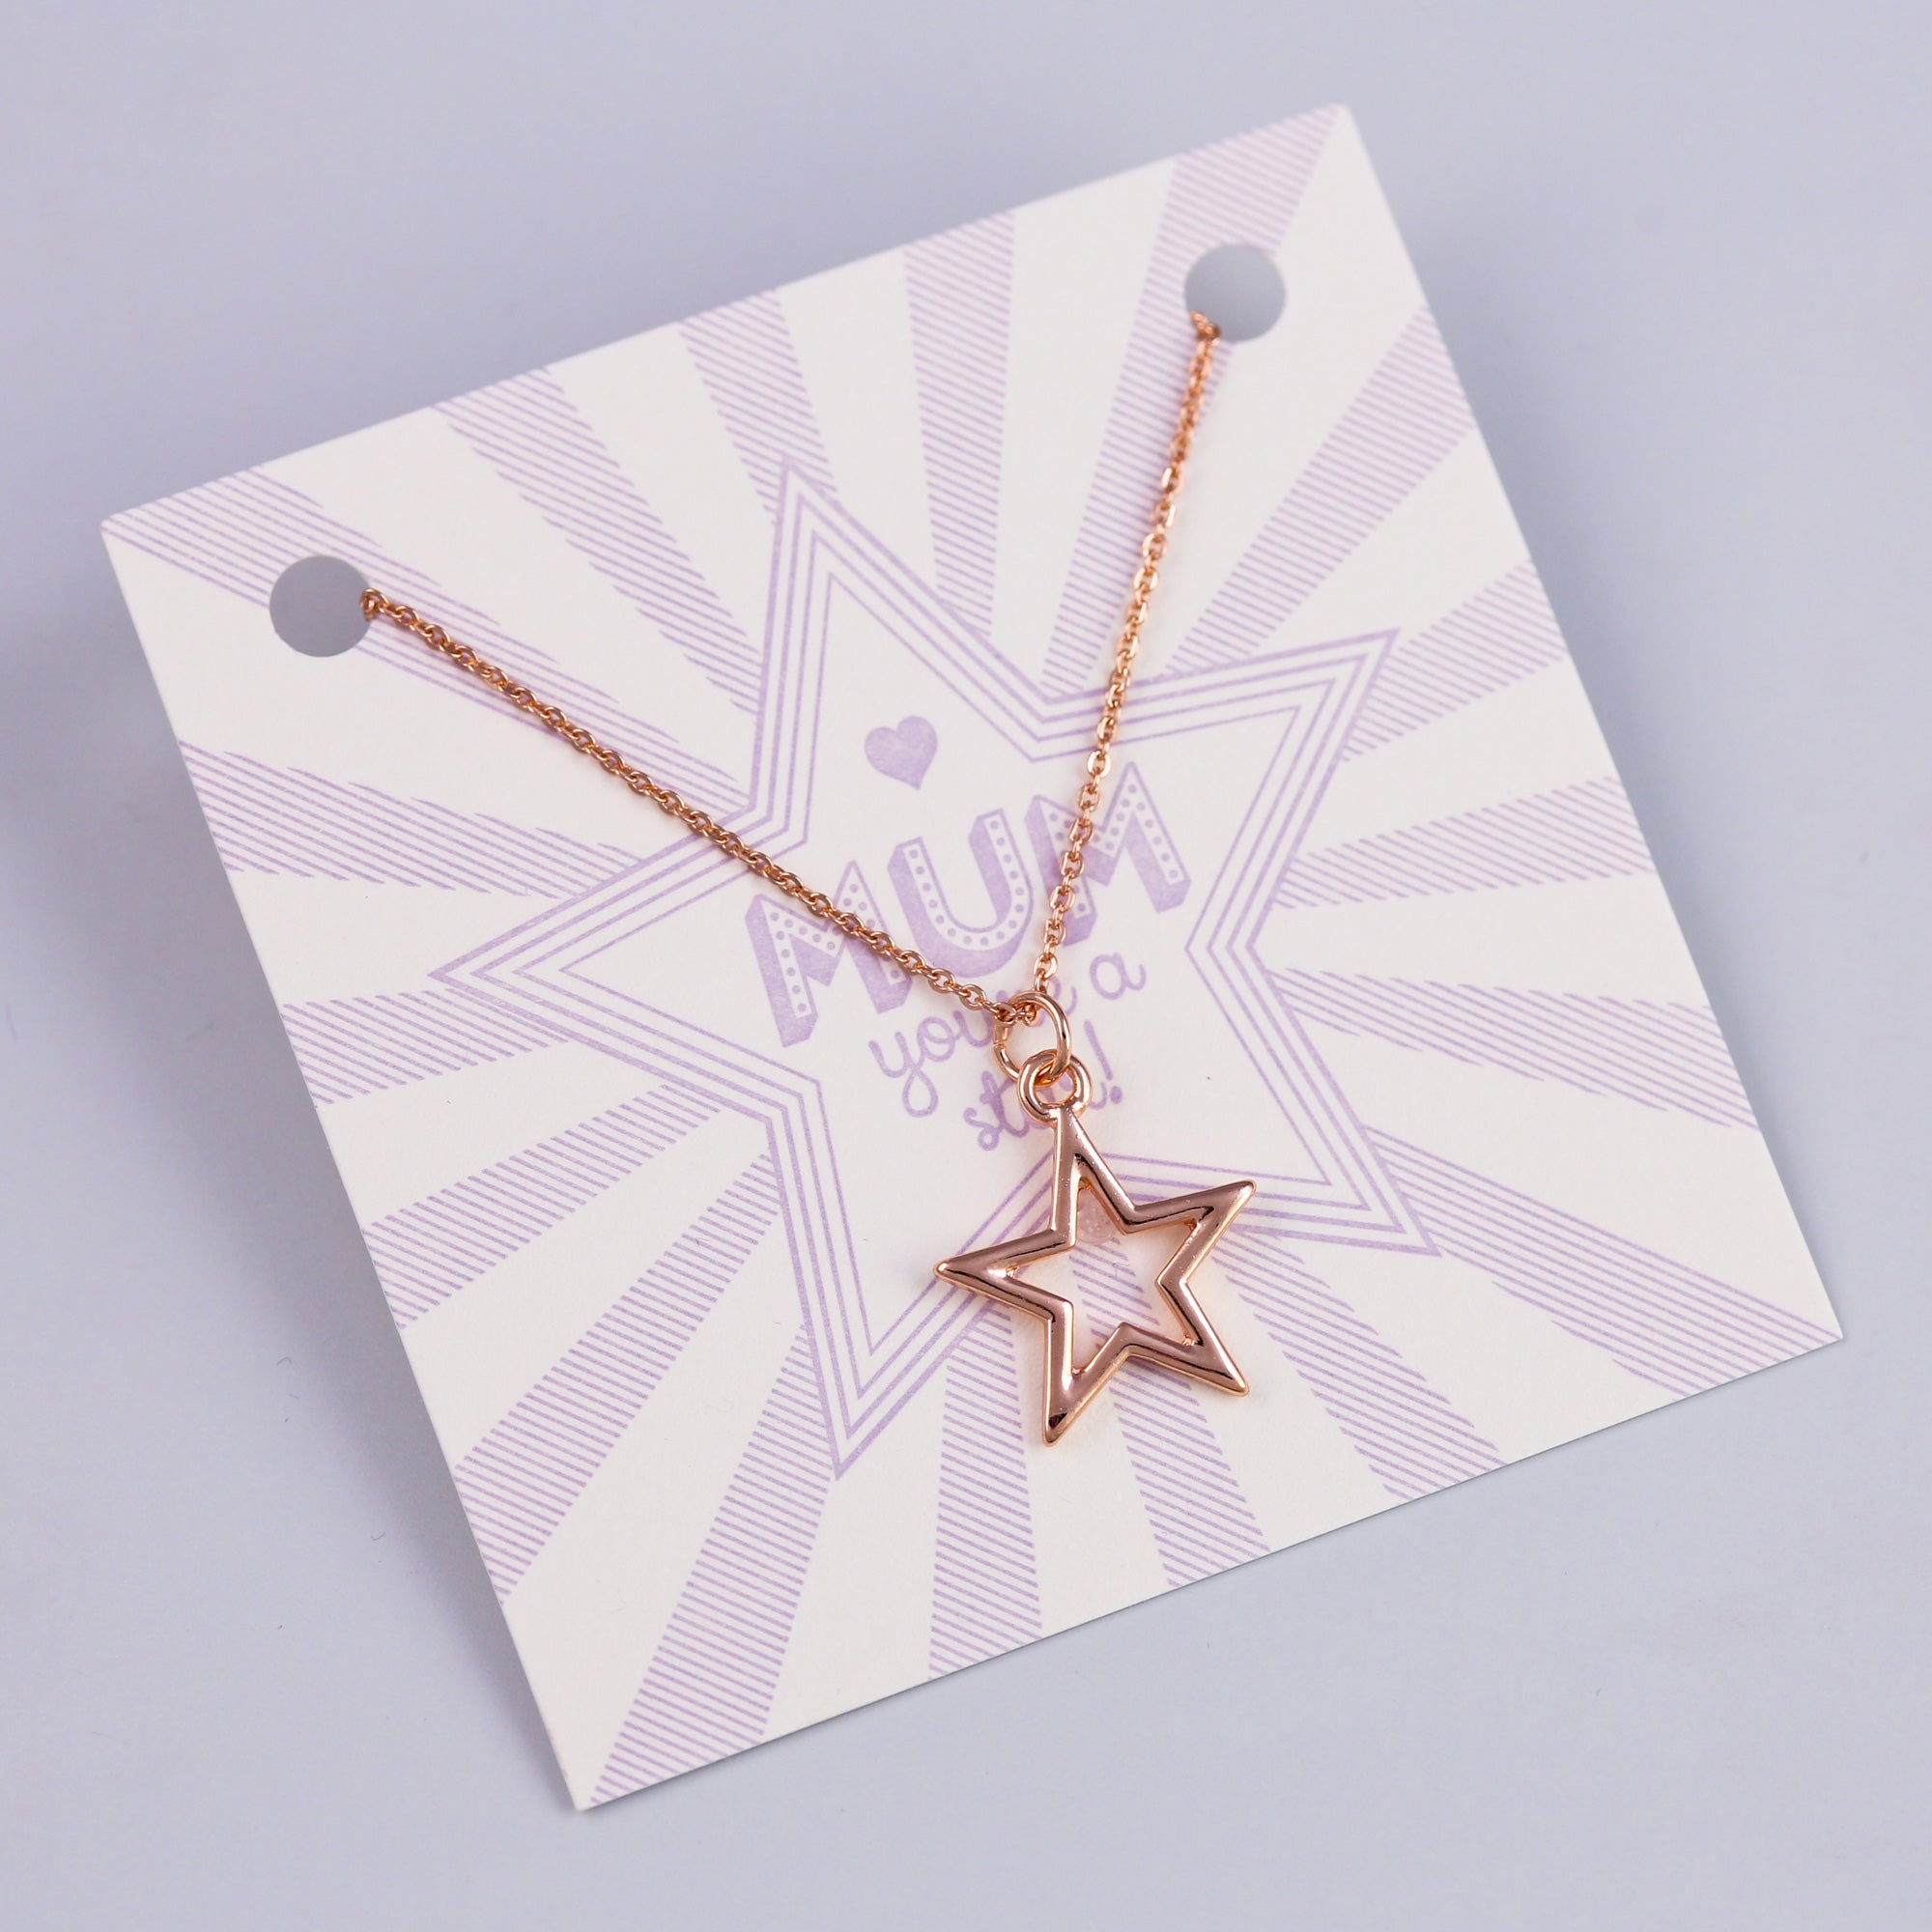 Mum Sentiment Card with Rose Gold Star Necklace